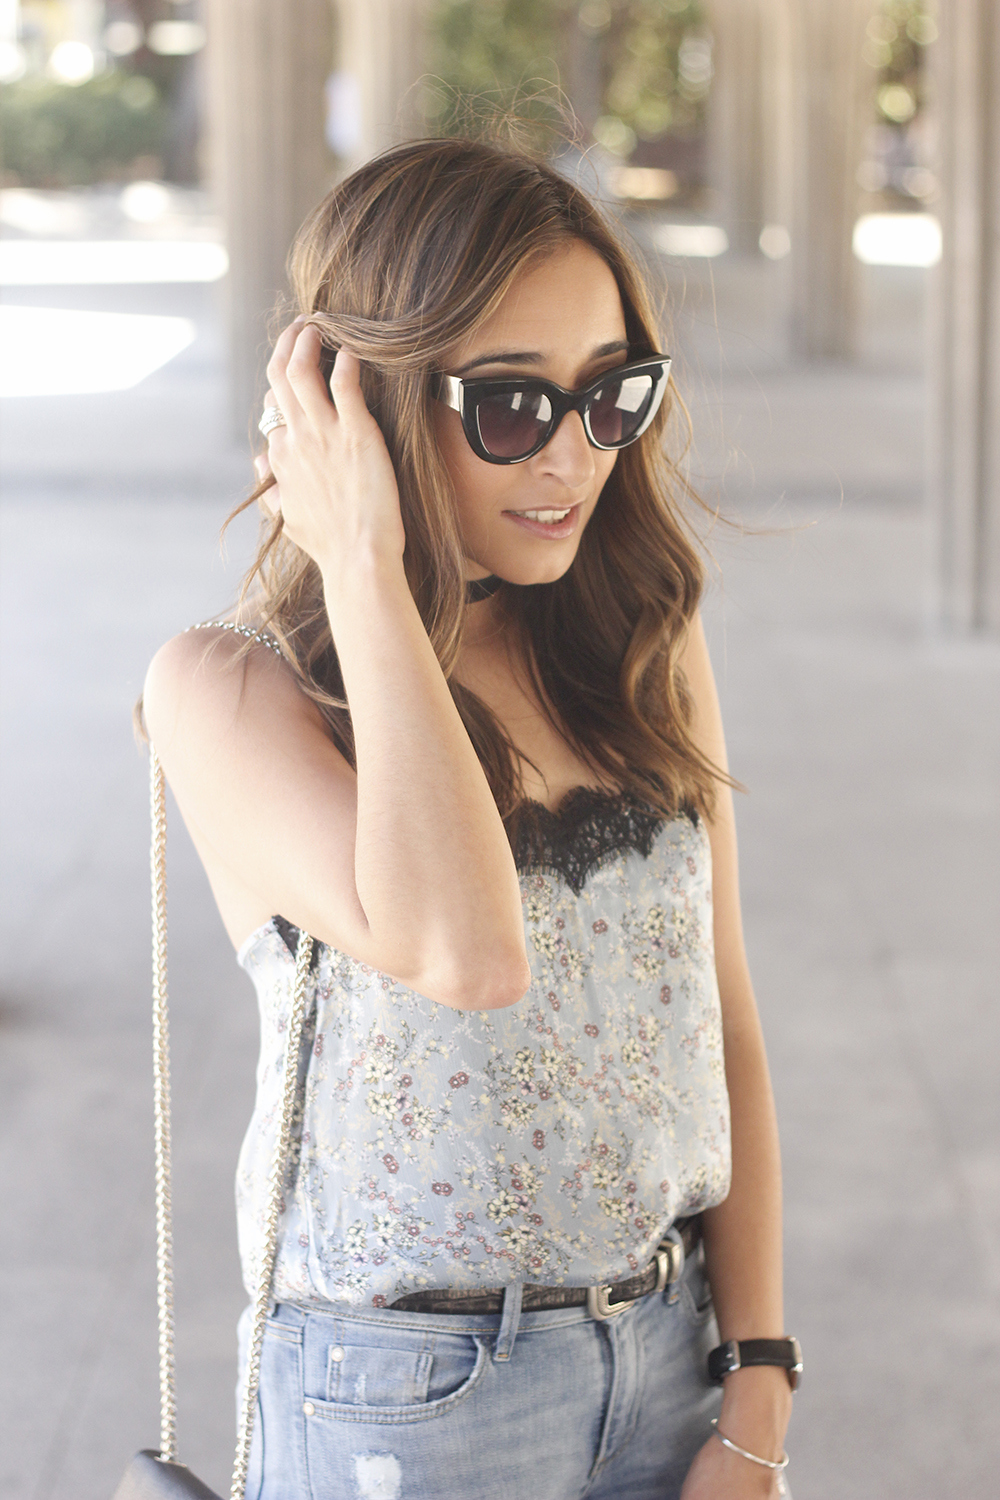 Lace top with skinny jeans heels summer outfit fashion style accesories13